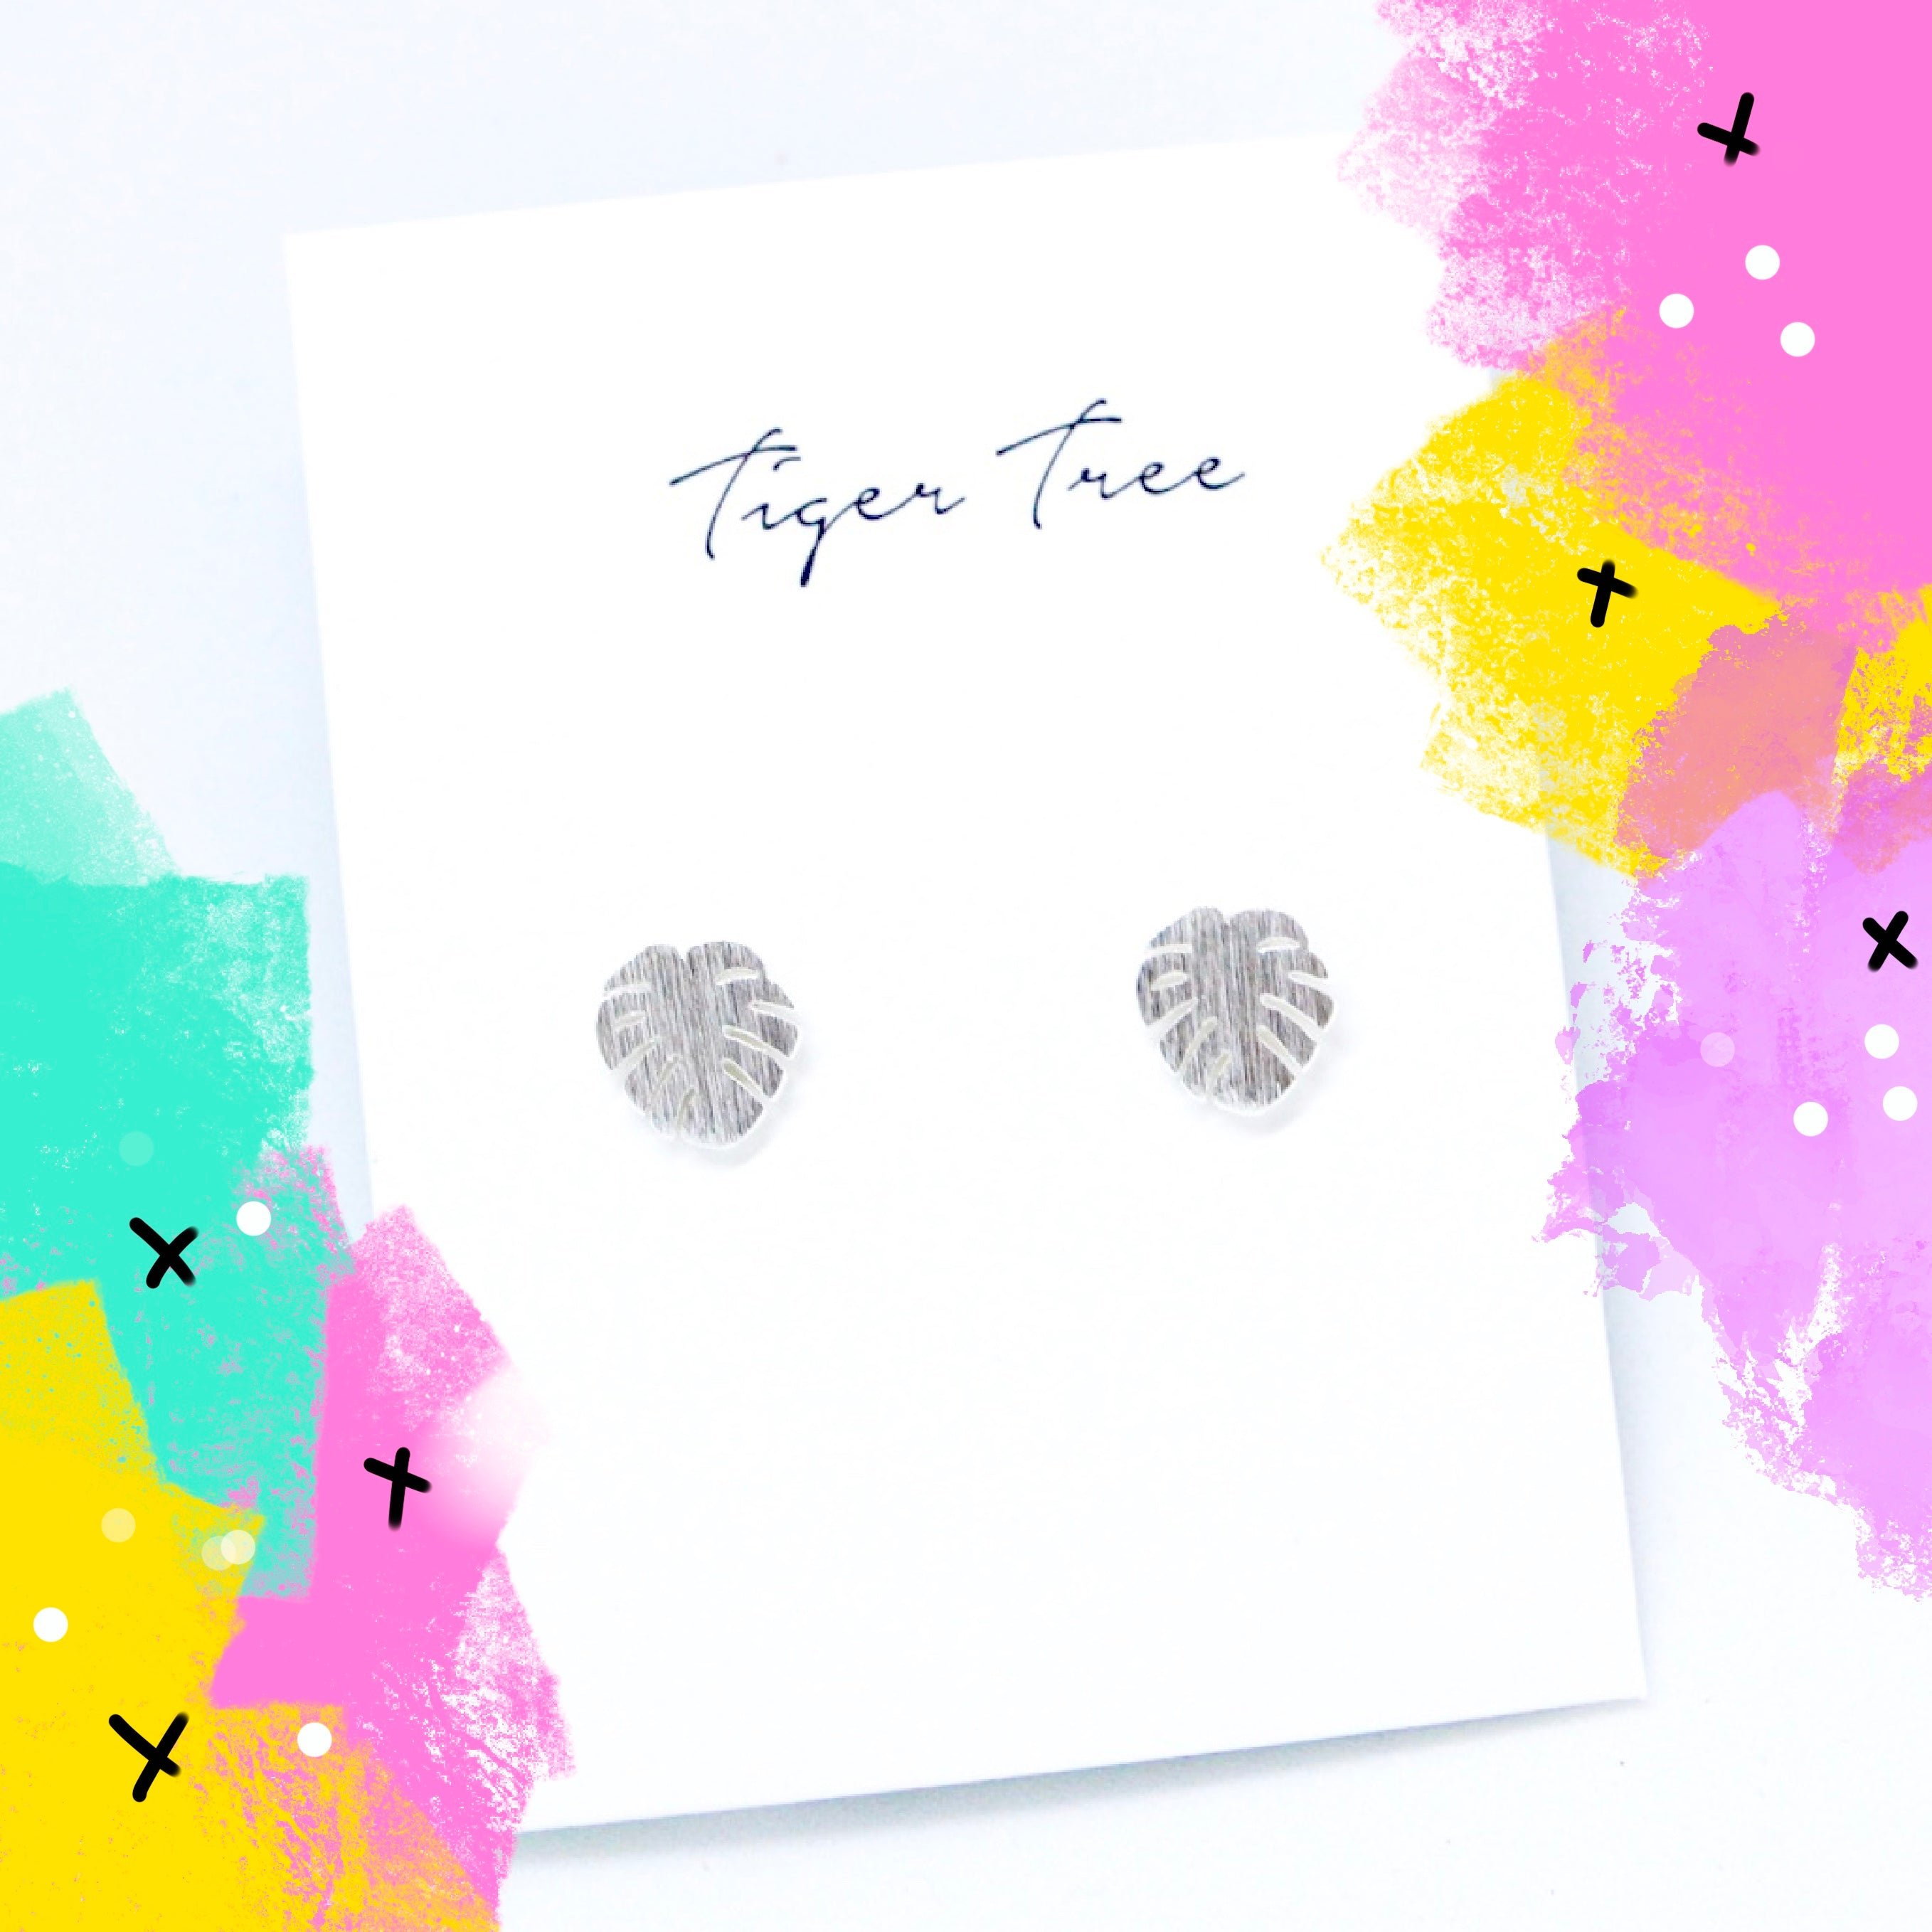 Tiger Tree brushed metal monstera leaf studs - silver